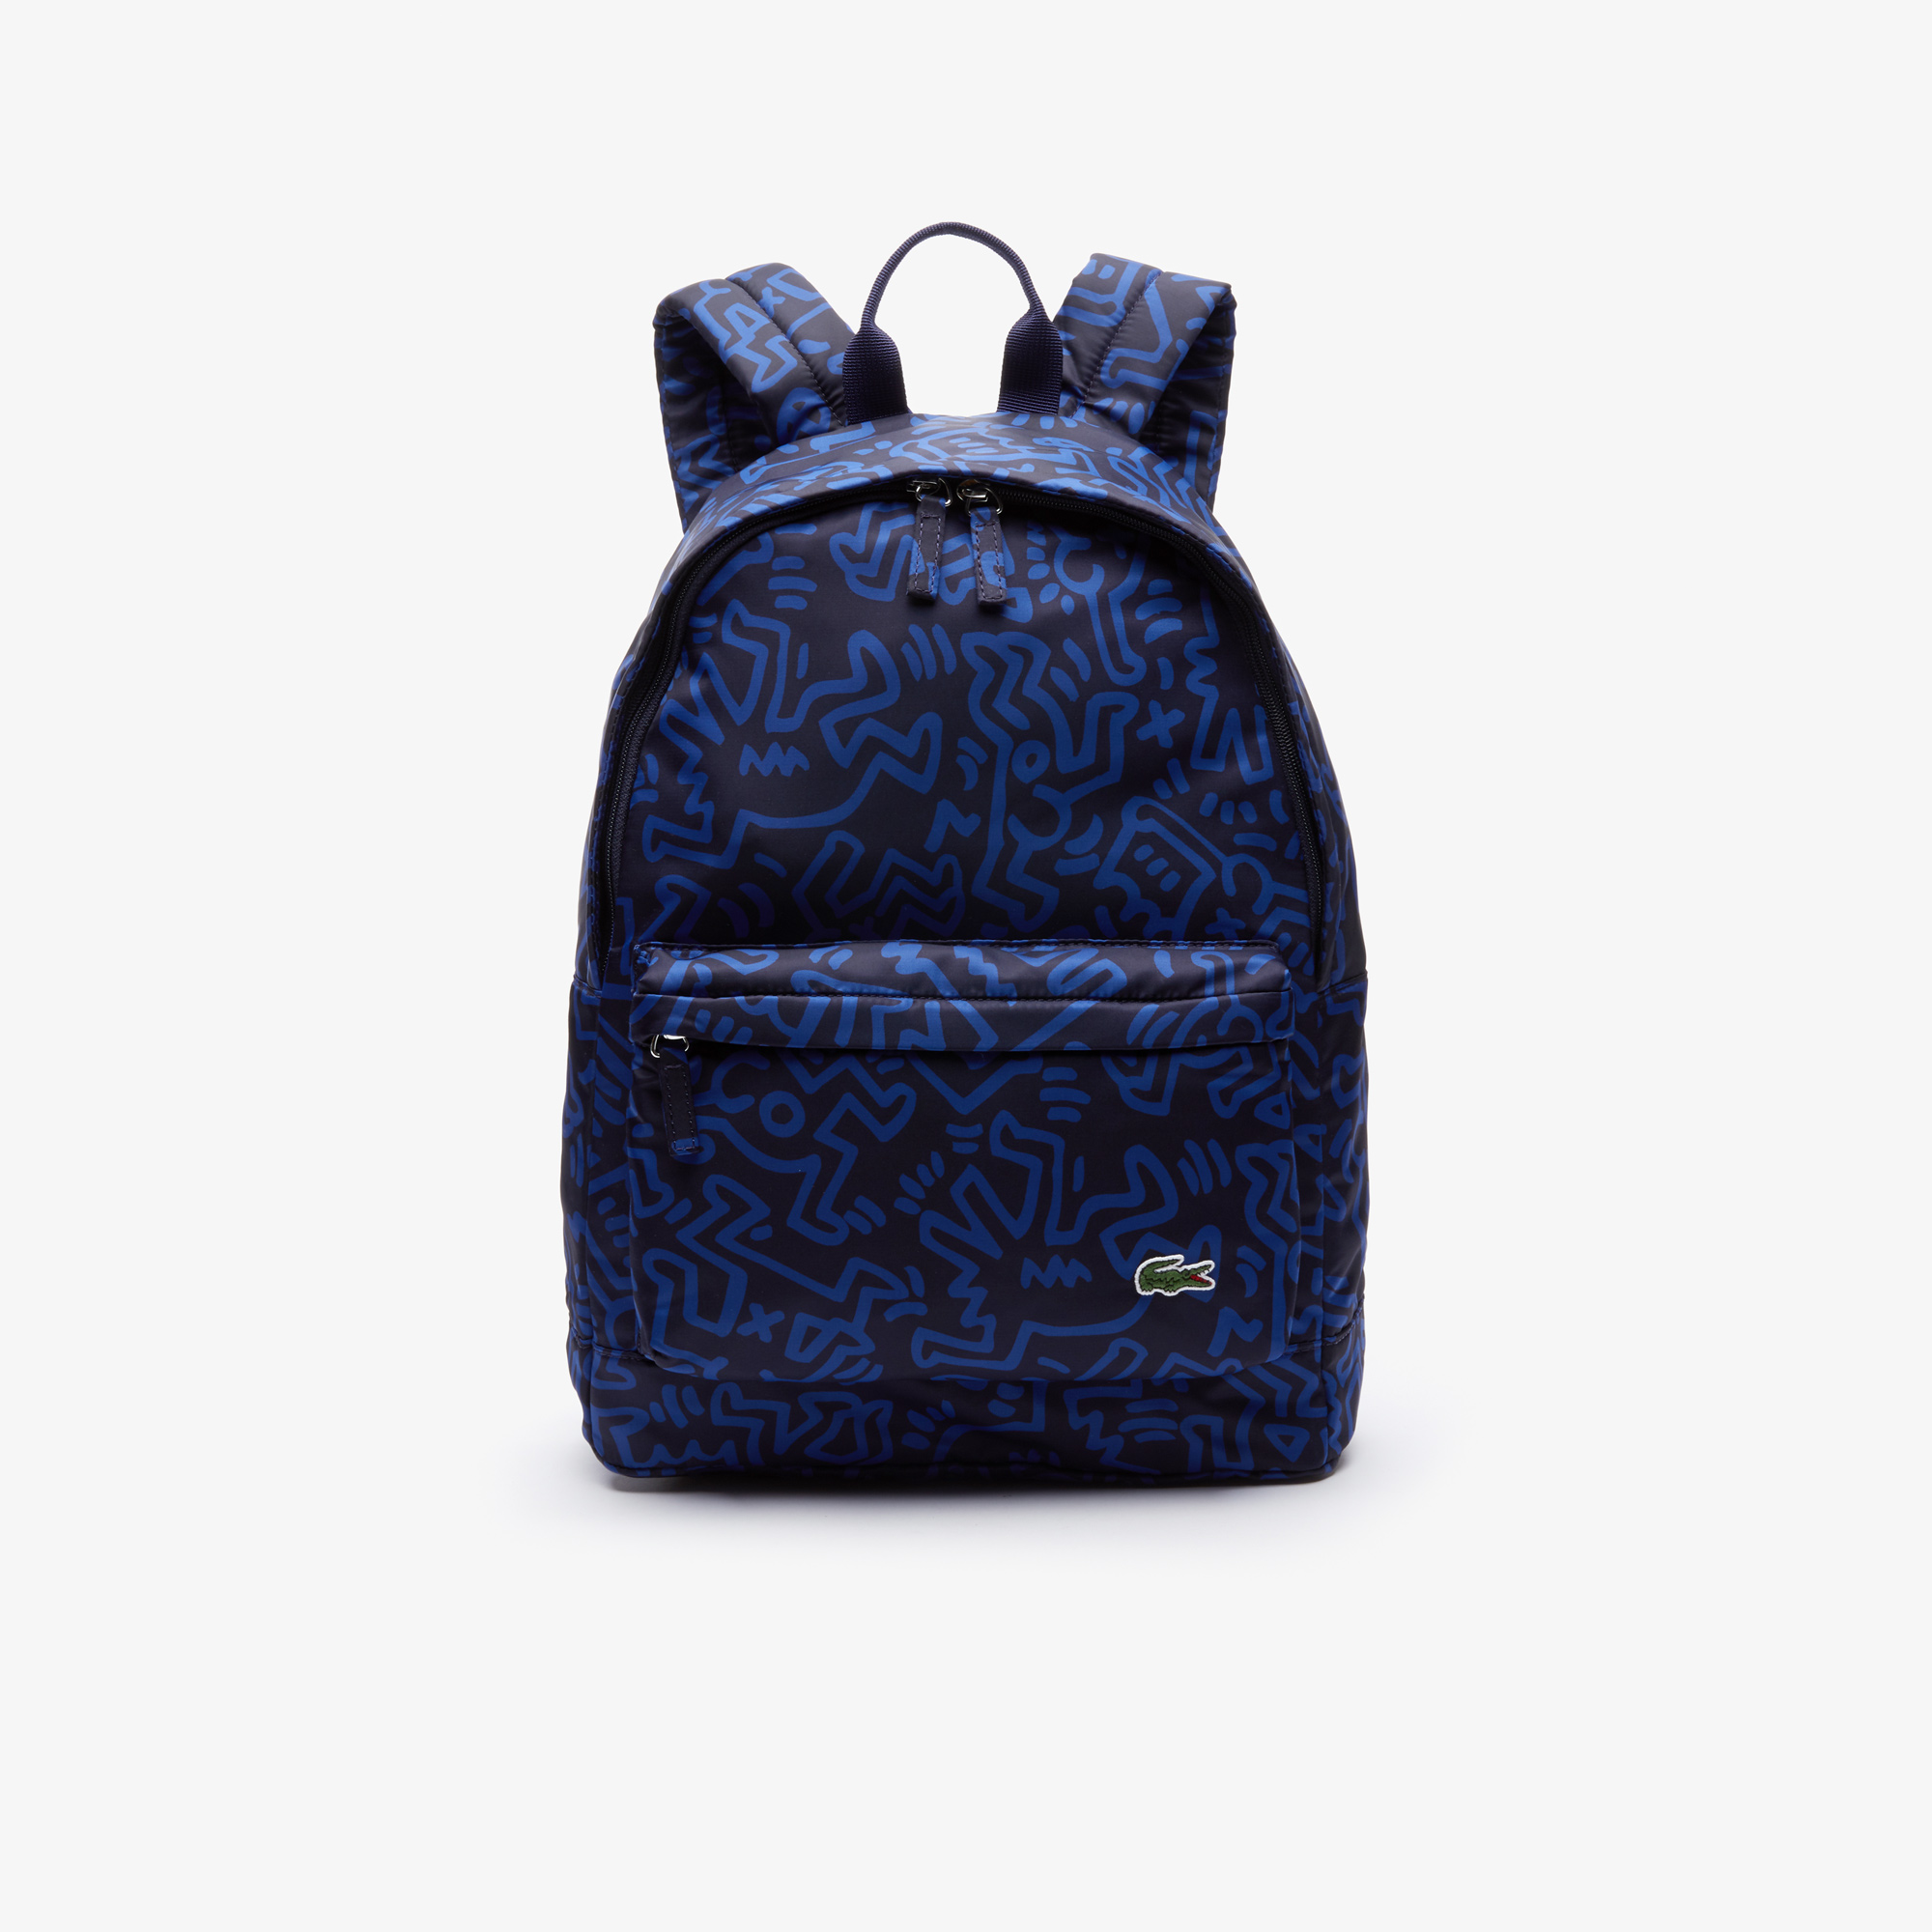 Keith Haring Backpack $178